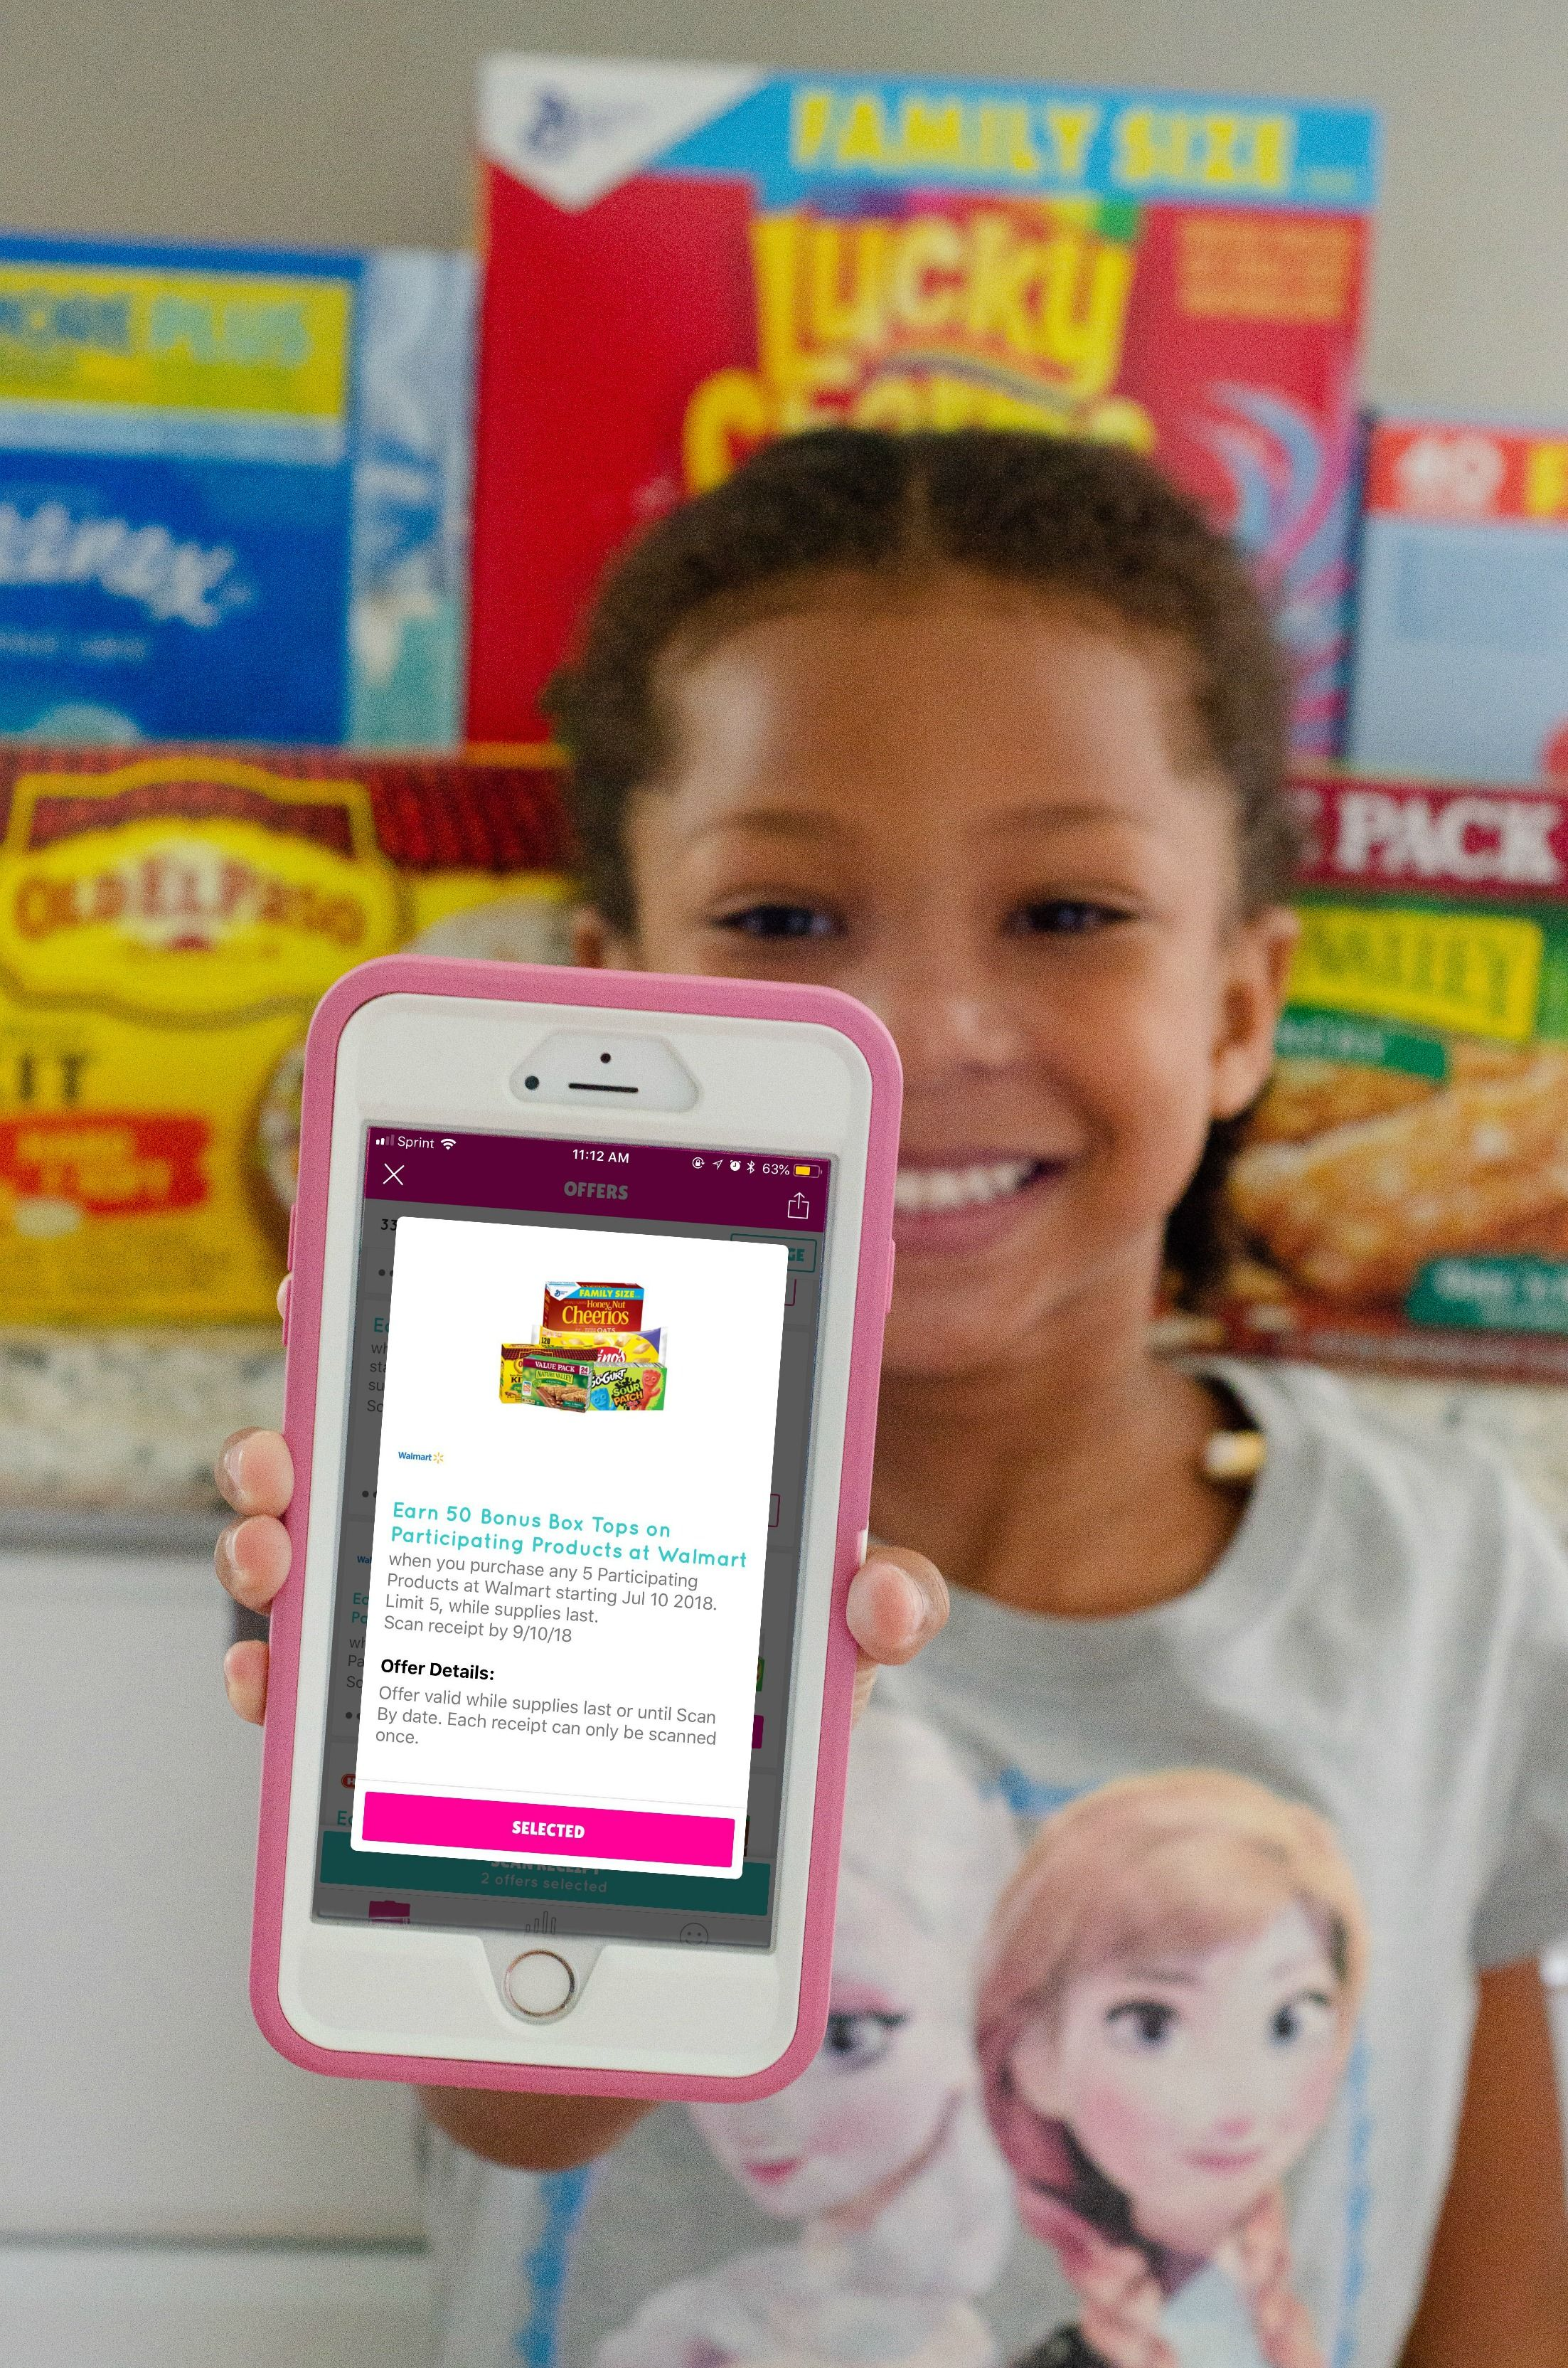 Did you know BoxTops are easier than ever to claim